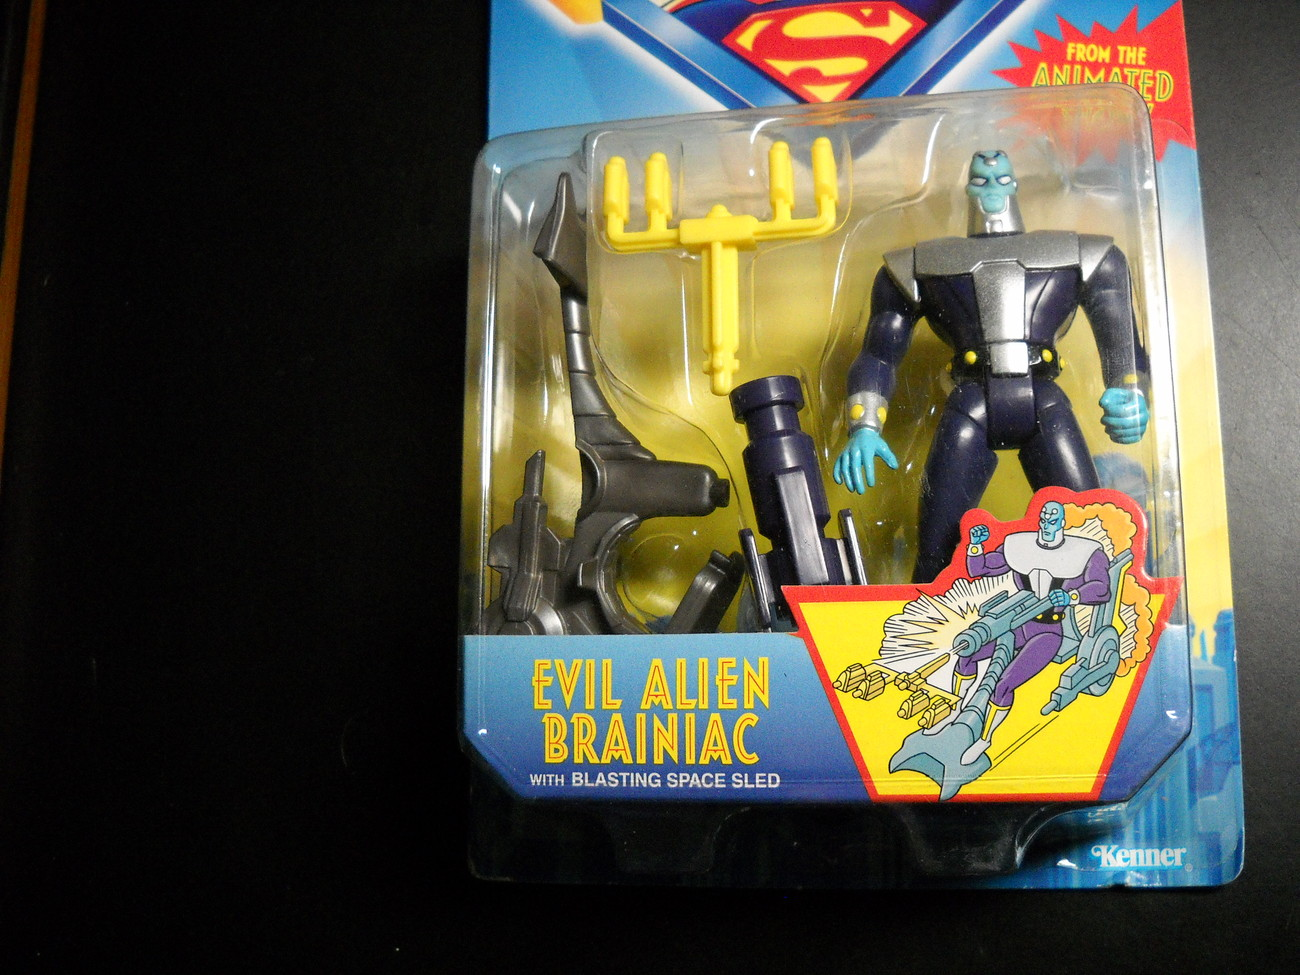 Kenner Hasbro Superman Animated Show Brainiac 1996 Sealed Kenner Hasbro Sealed